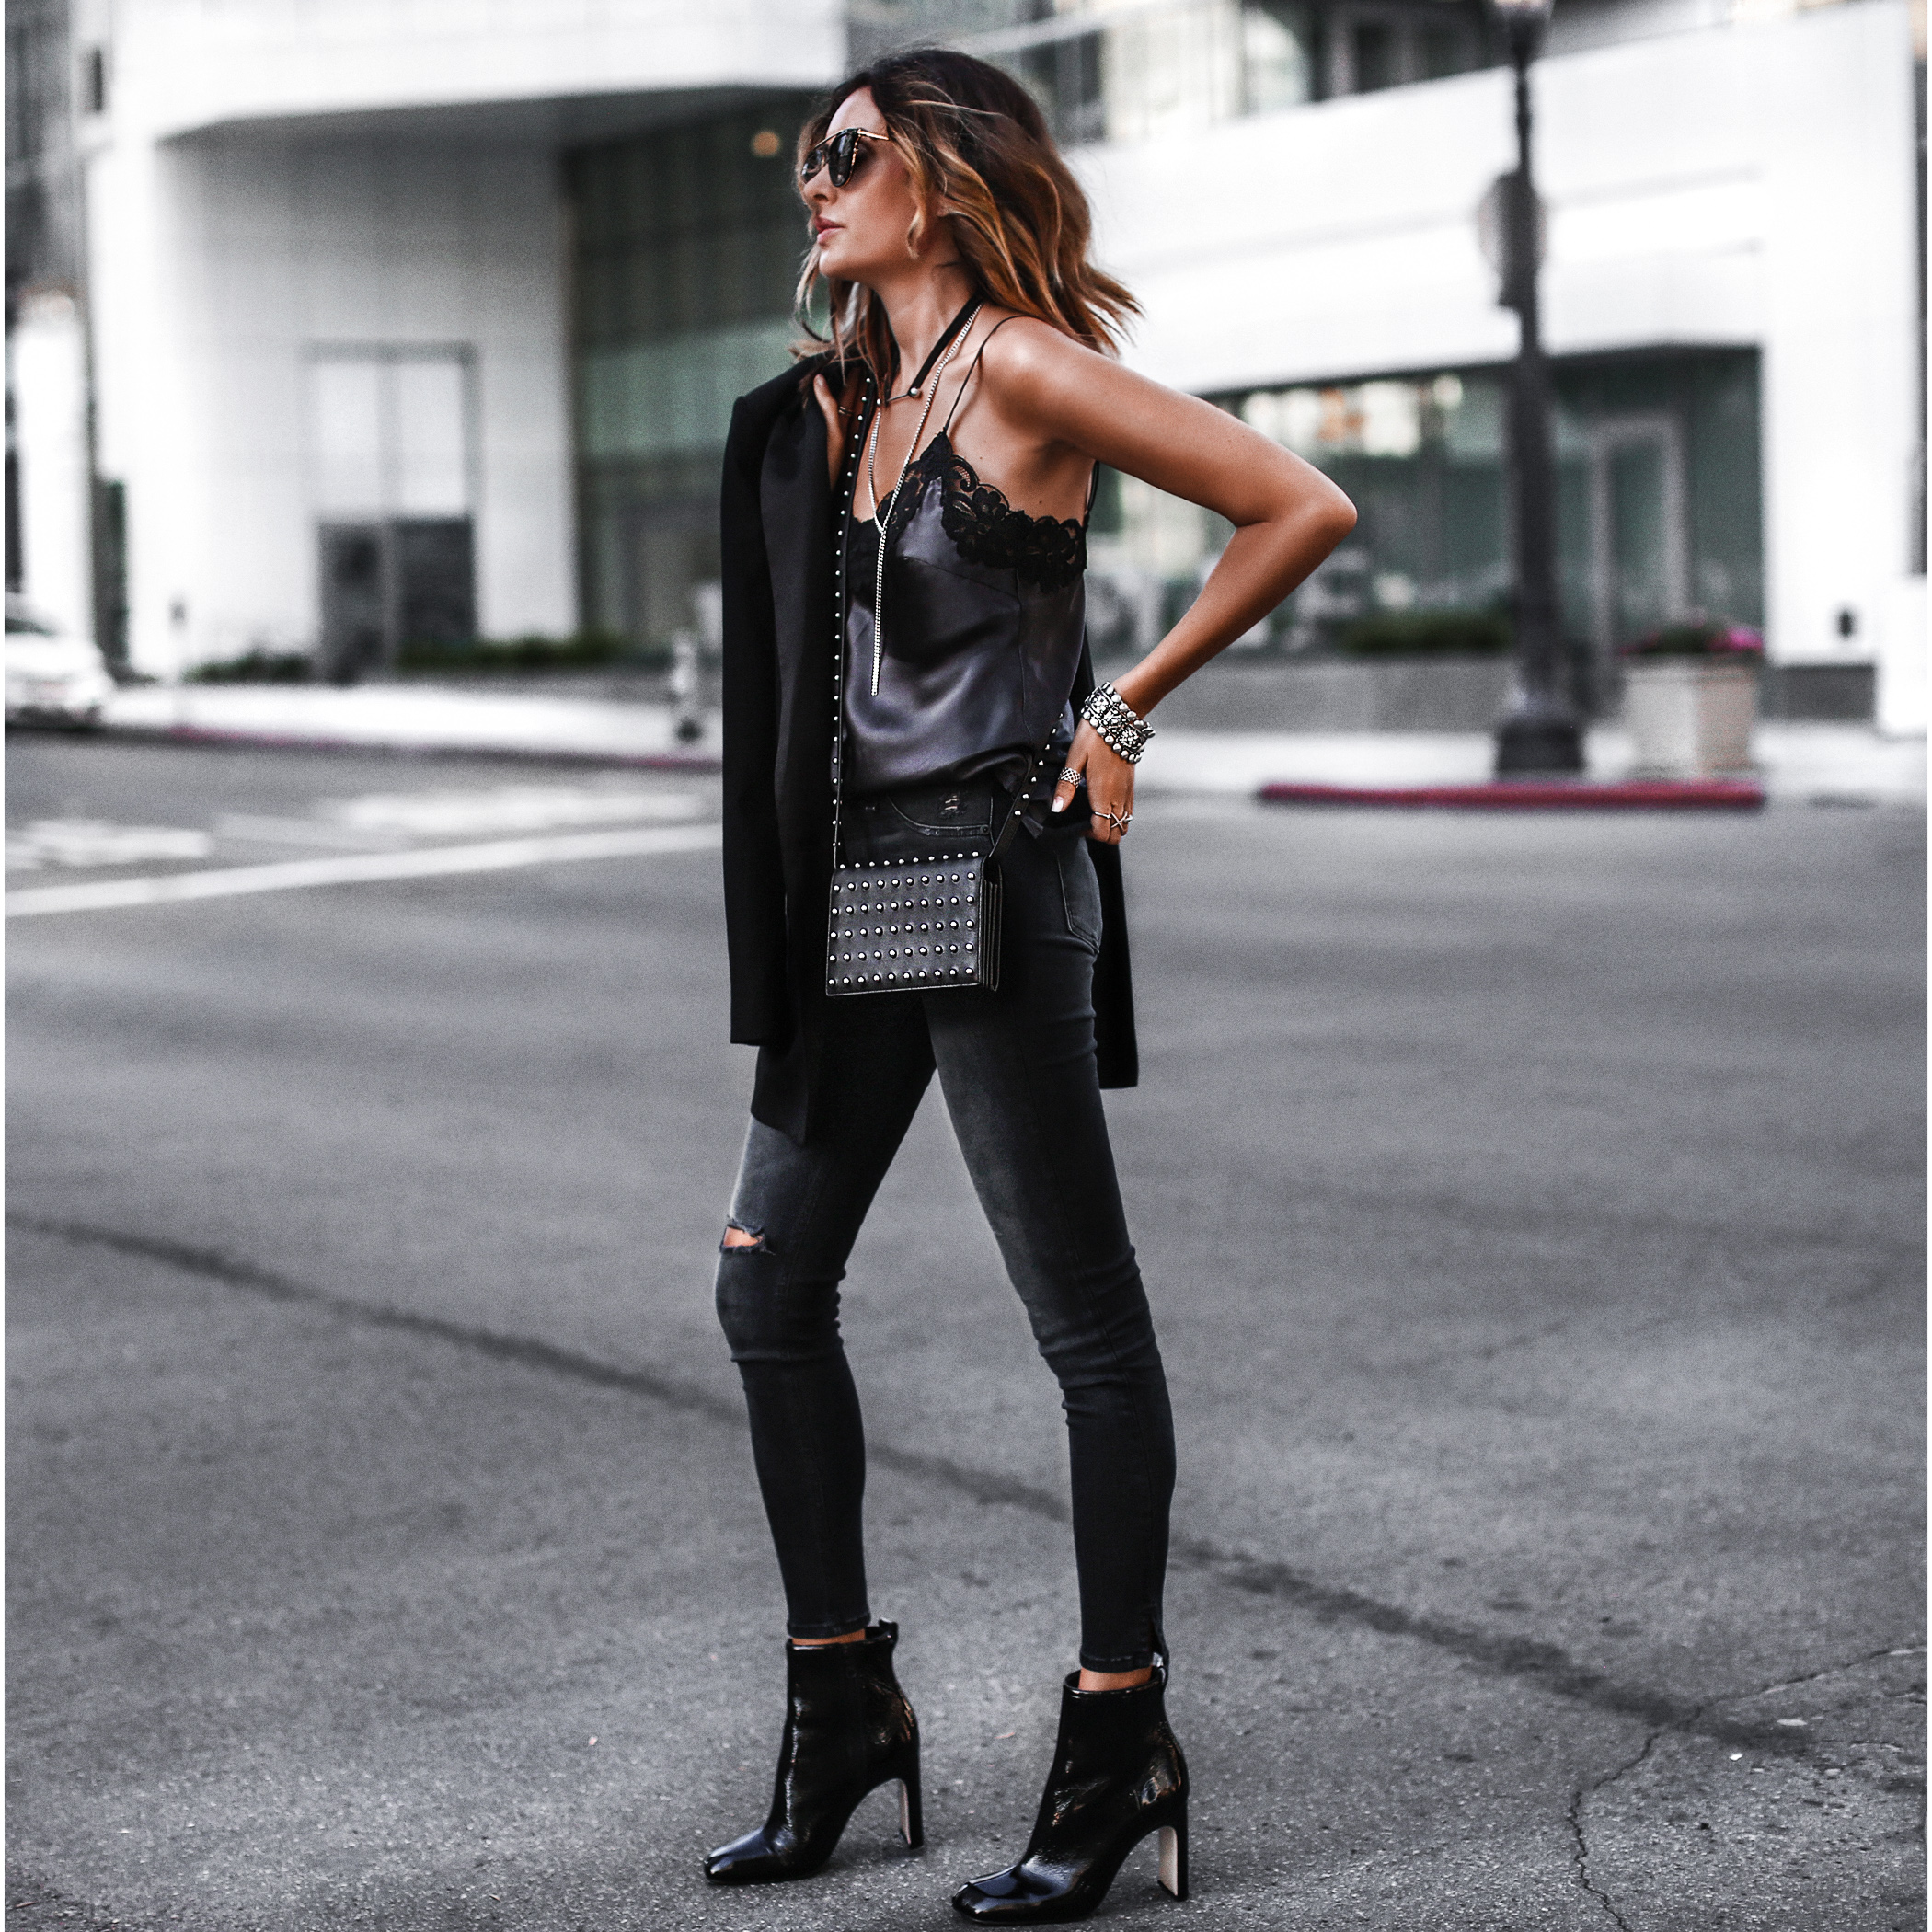 satin and lace cami, black skinny jeans, black blazer, patent leather booties, studded crossbody bag